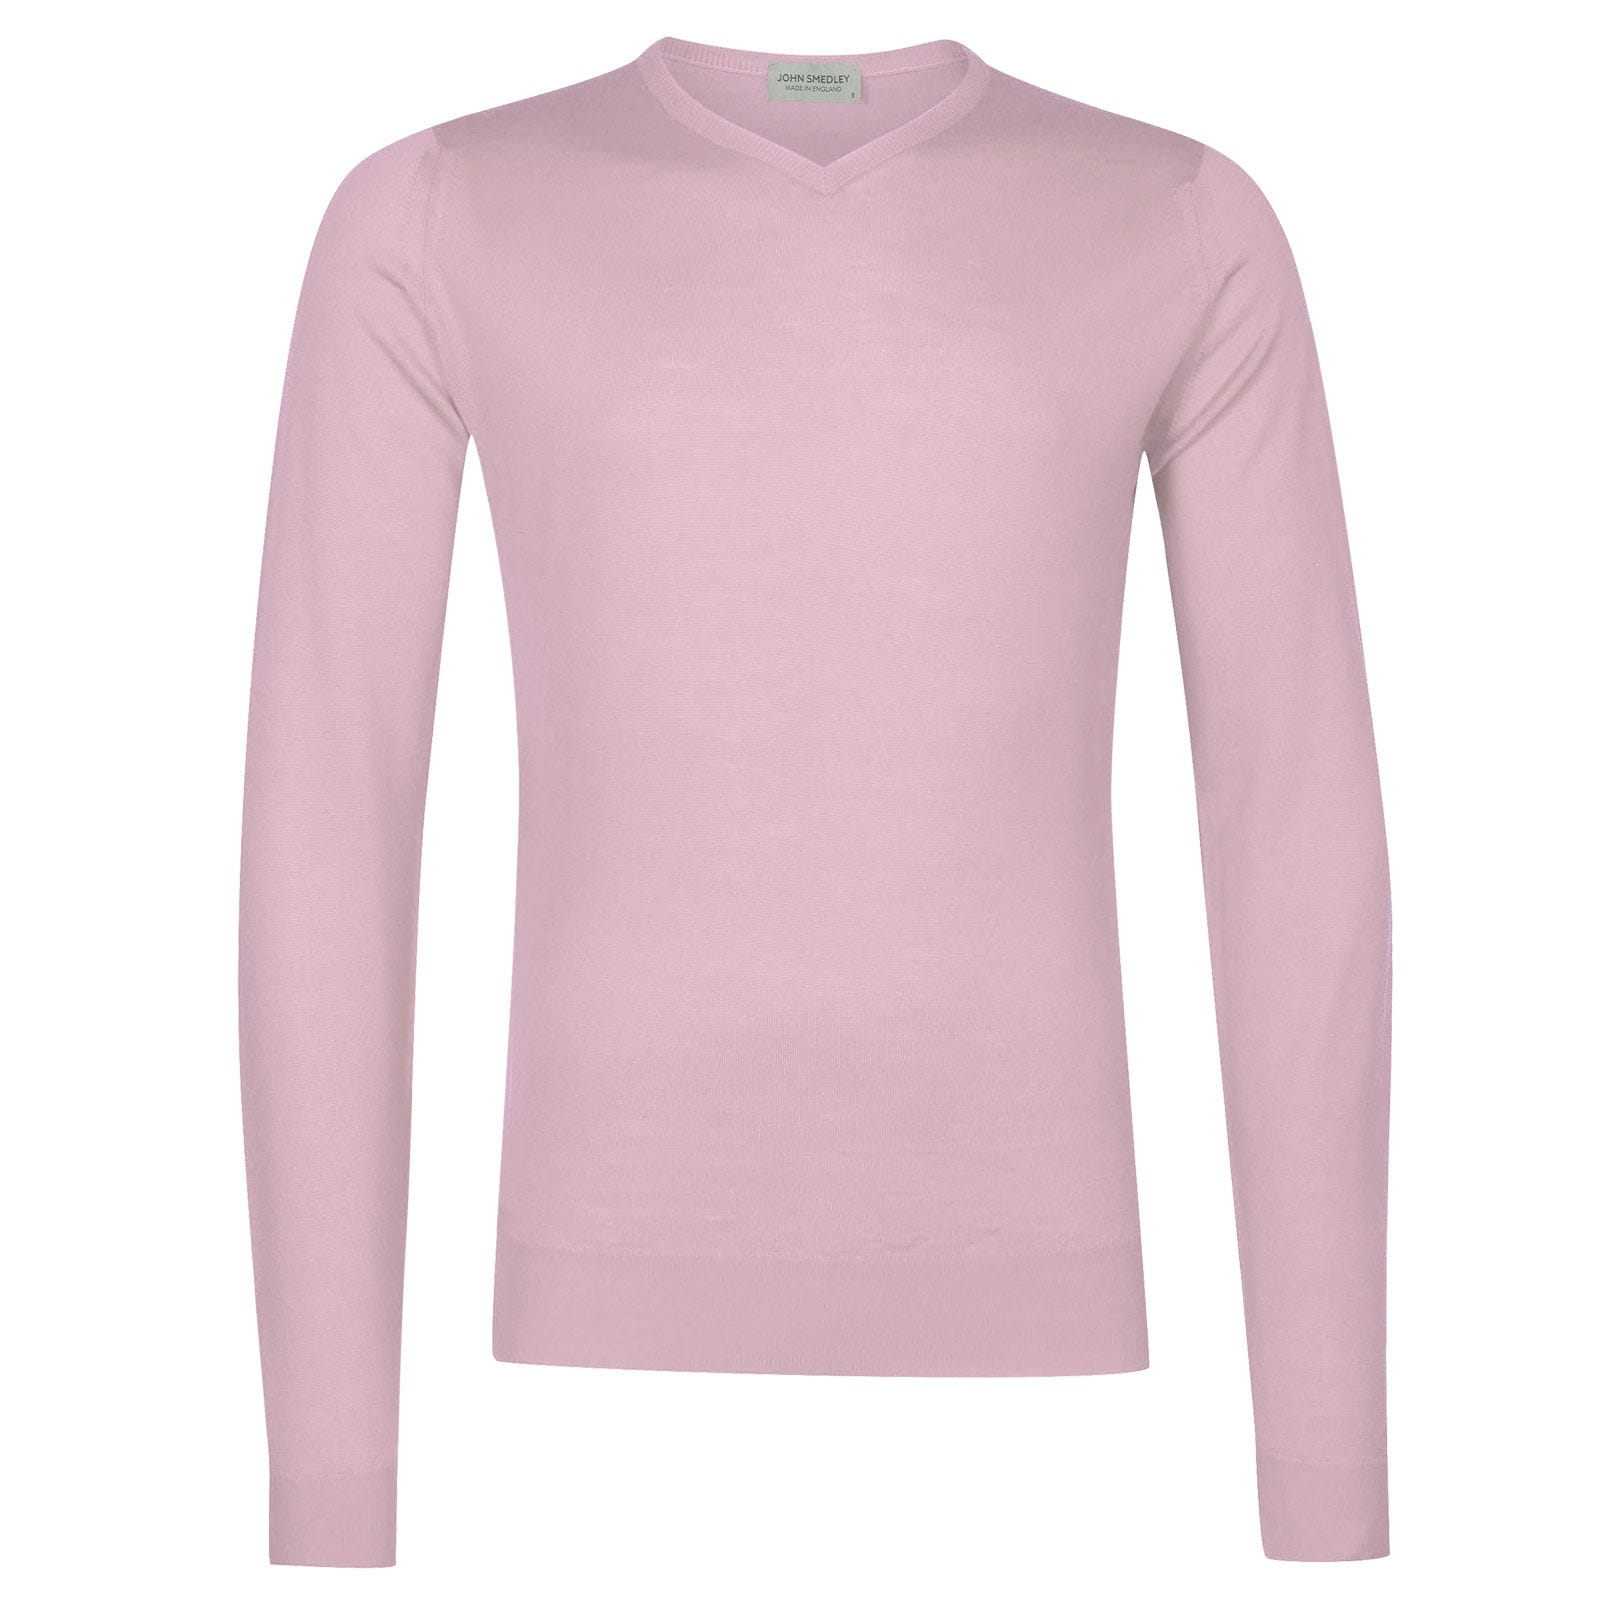 John Smedley Shipton in Pink Blossom Pullover-XLG